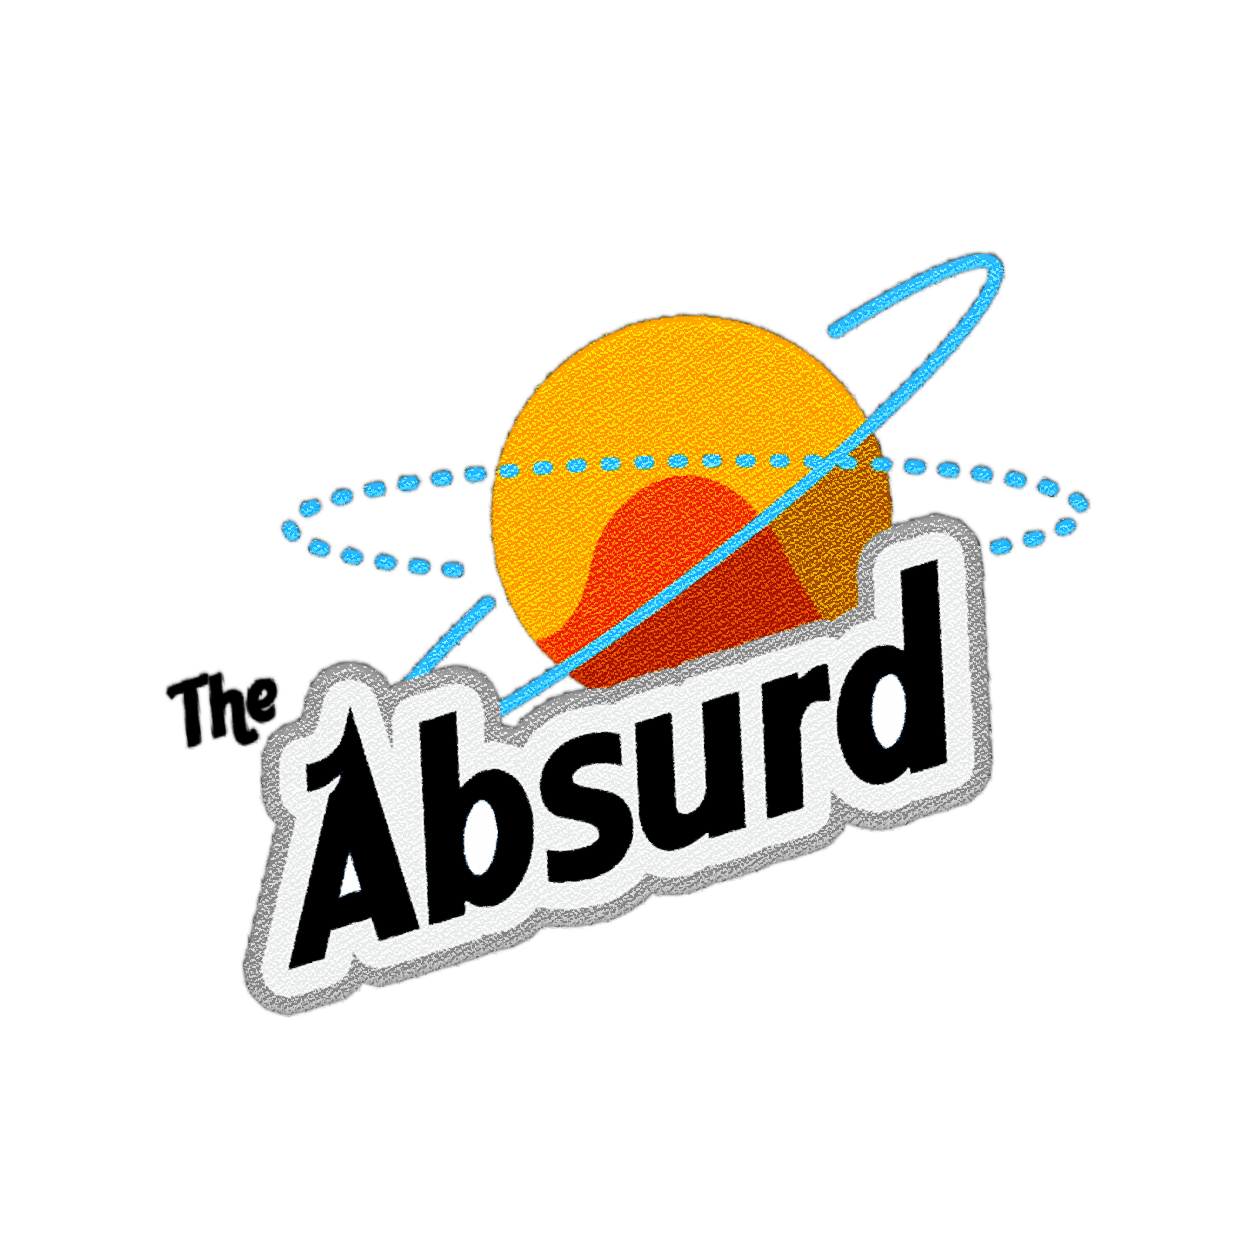 04 - The Absurd.png